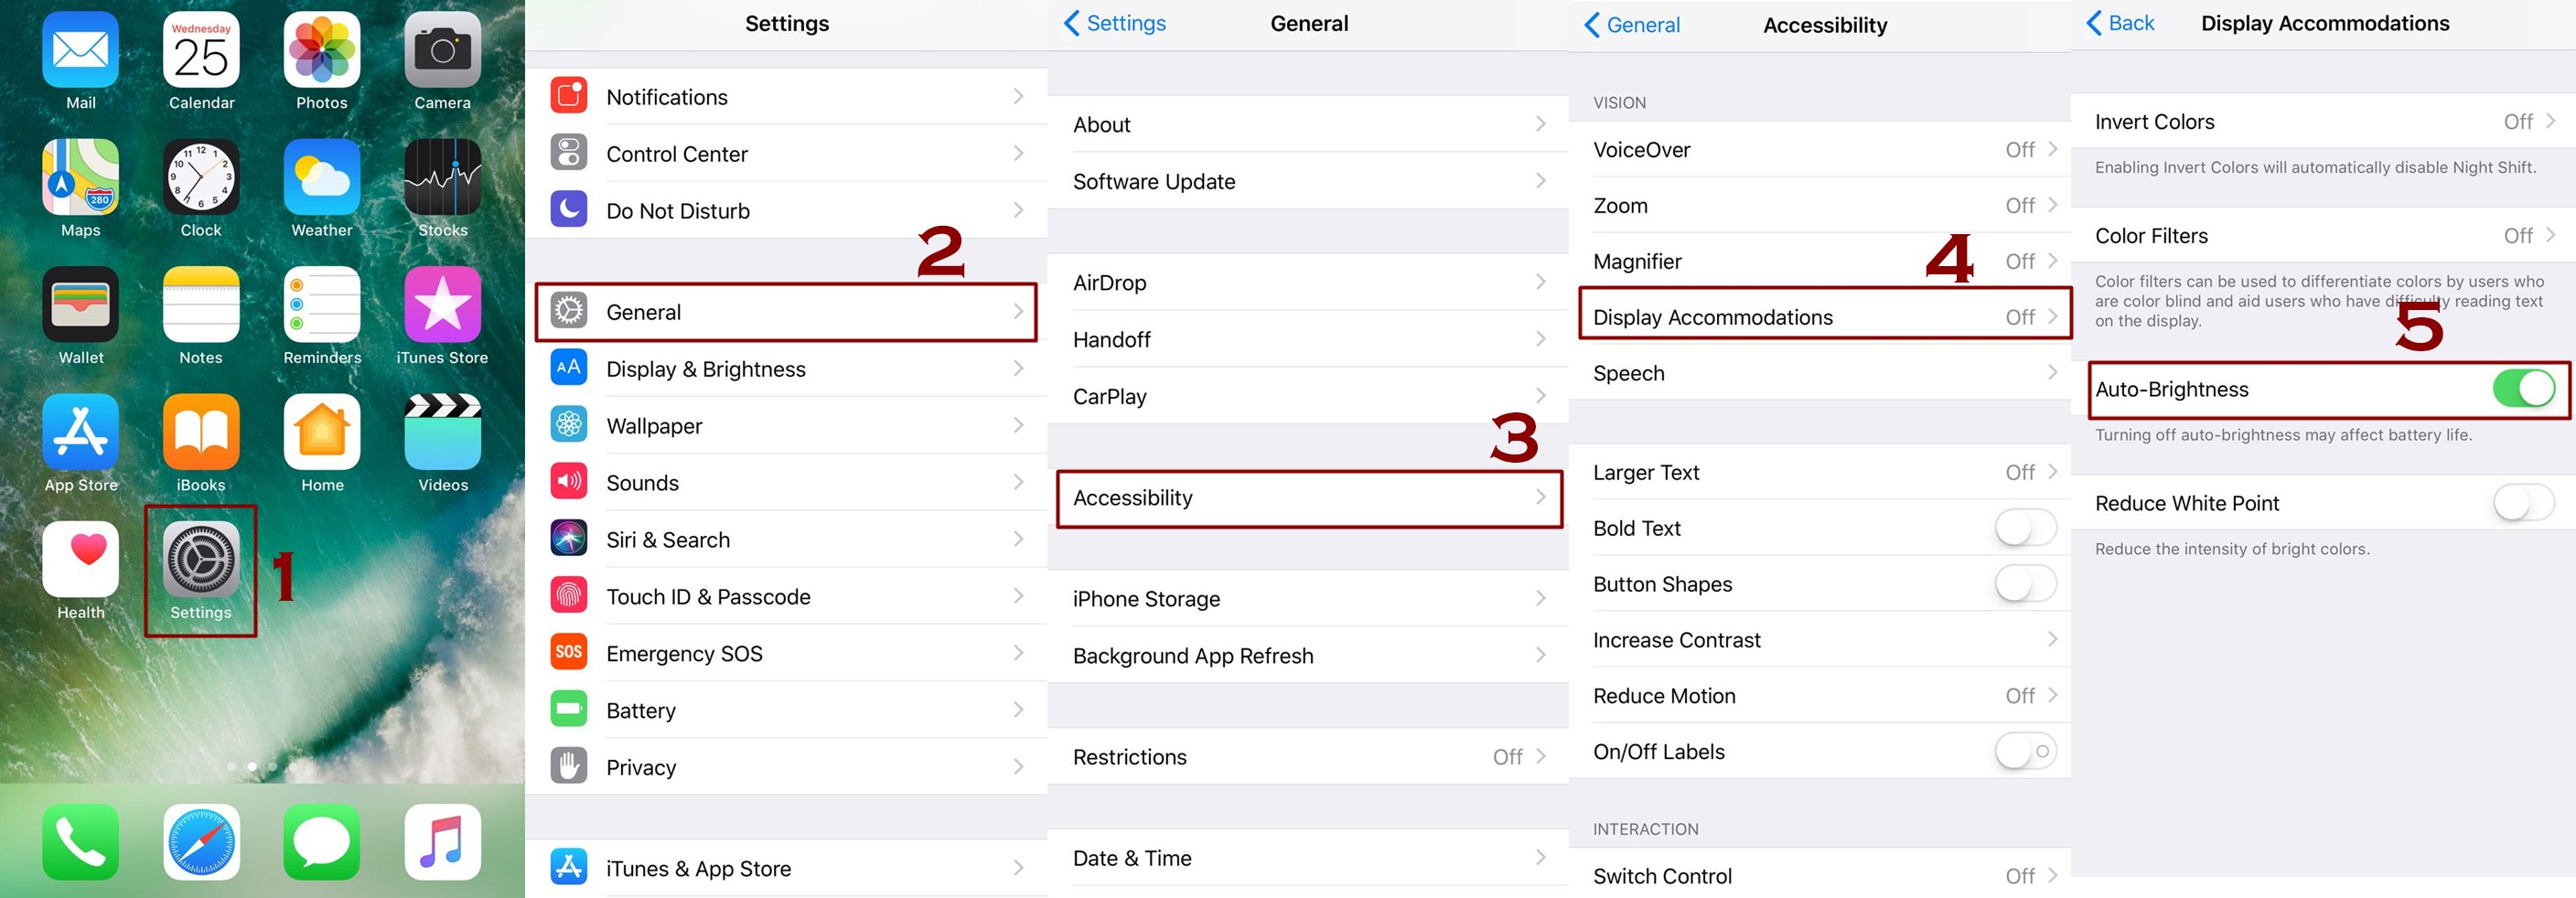 How to turn on off auto brightness ios - How to Adjust the Screen Brightness on iPhone